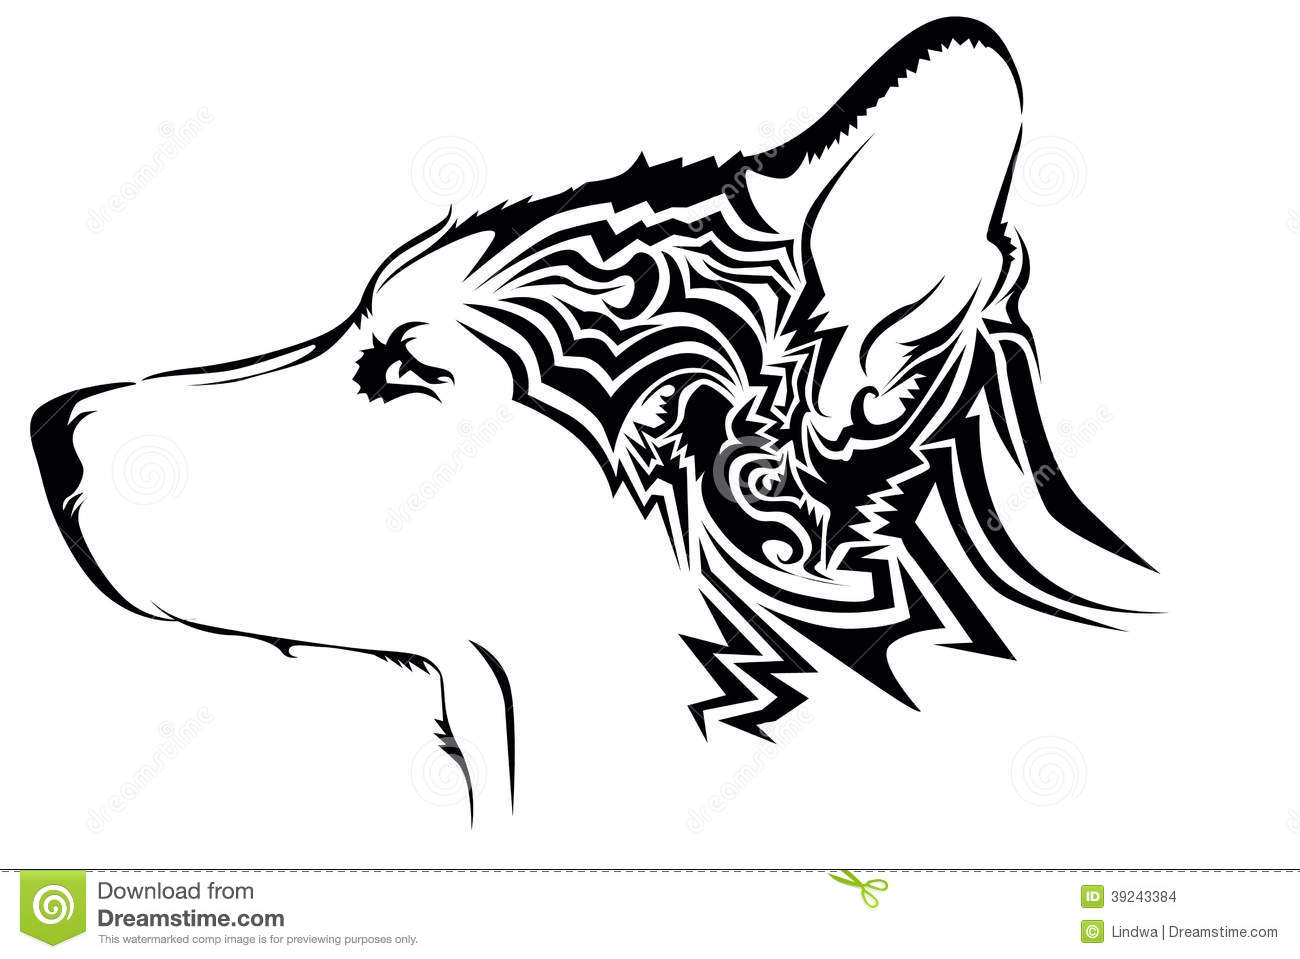 Tribal wolf tattoo stock vector. Illustration of shepard ...